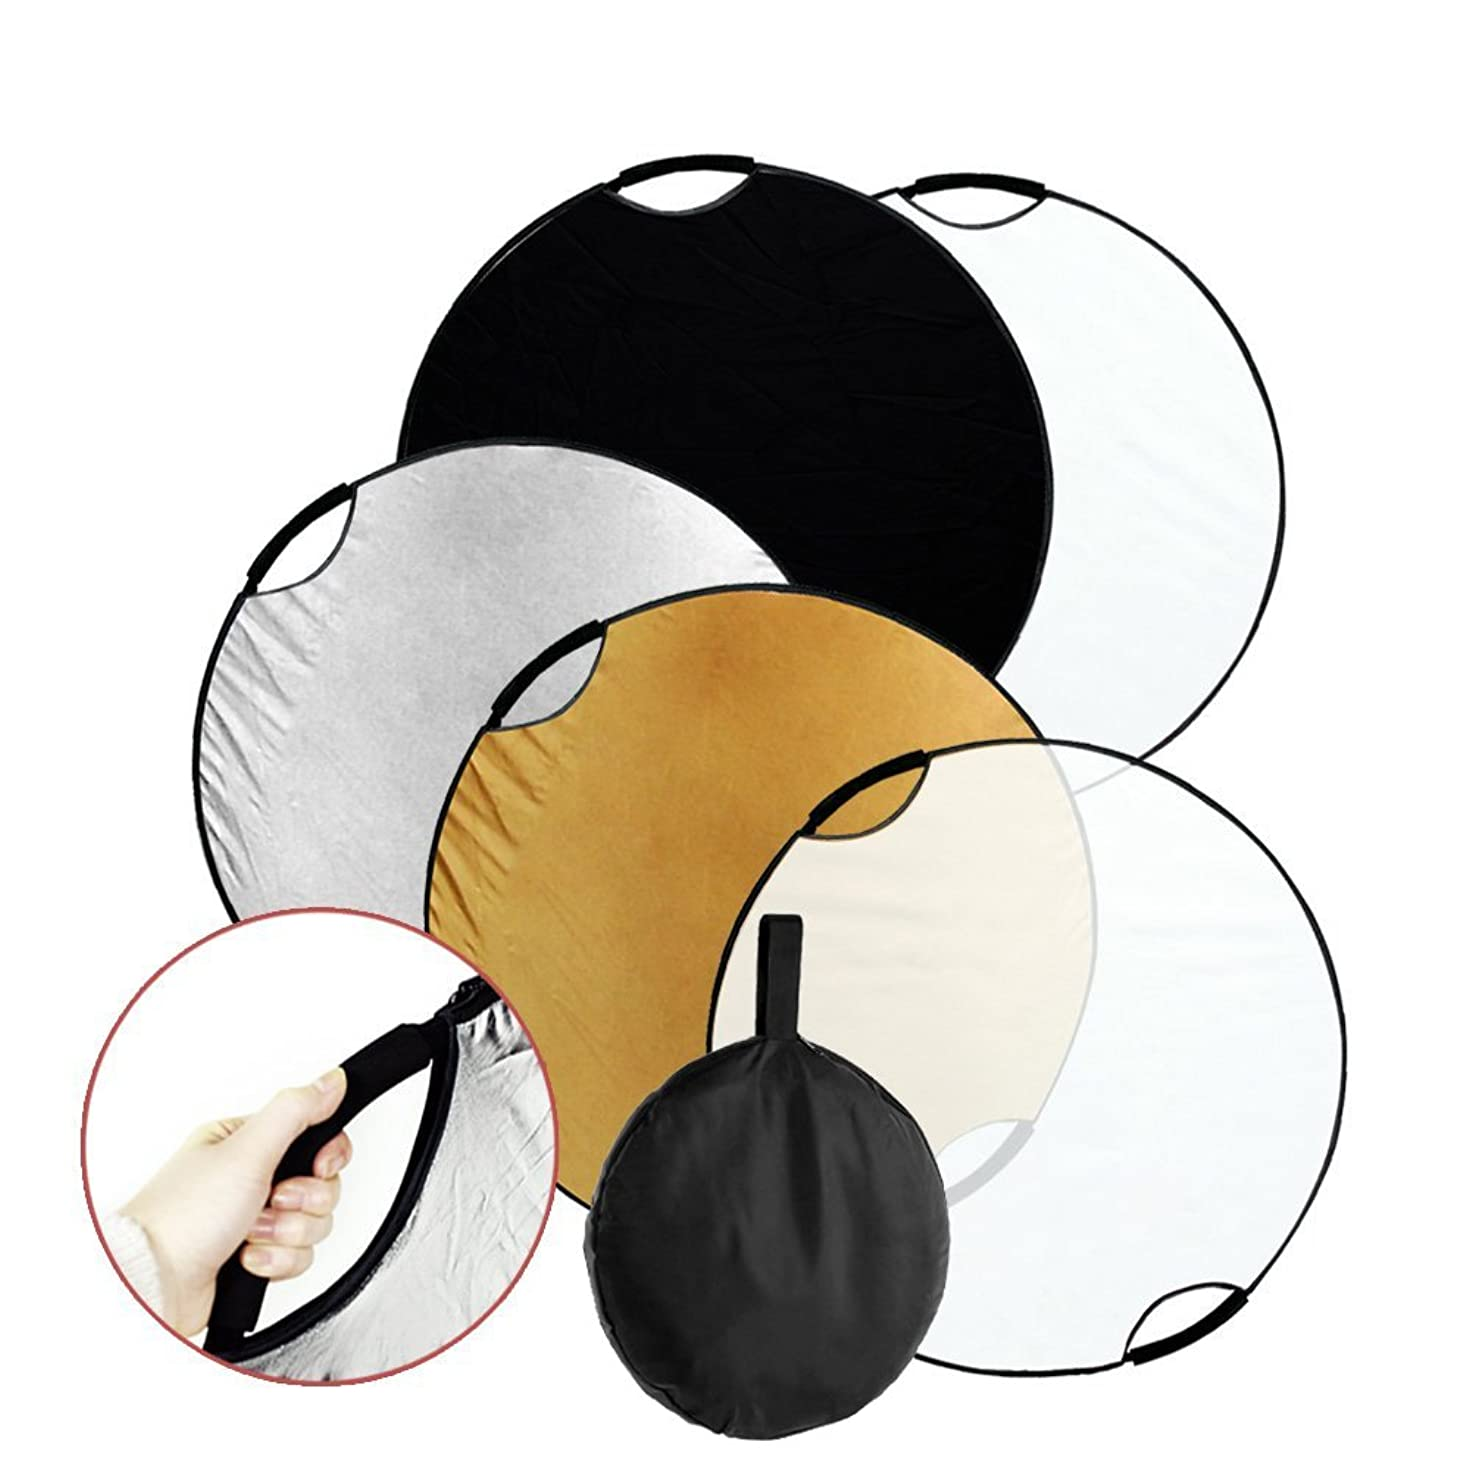 Fairview 5-in-1 43 inch 110cm Collapsible Multi-Disc Light Reflector Handle Disc panel with Carrying bag for Photography Photo Studio Lighting &Outdoor Lighting- Translucent Silver Gold White Black